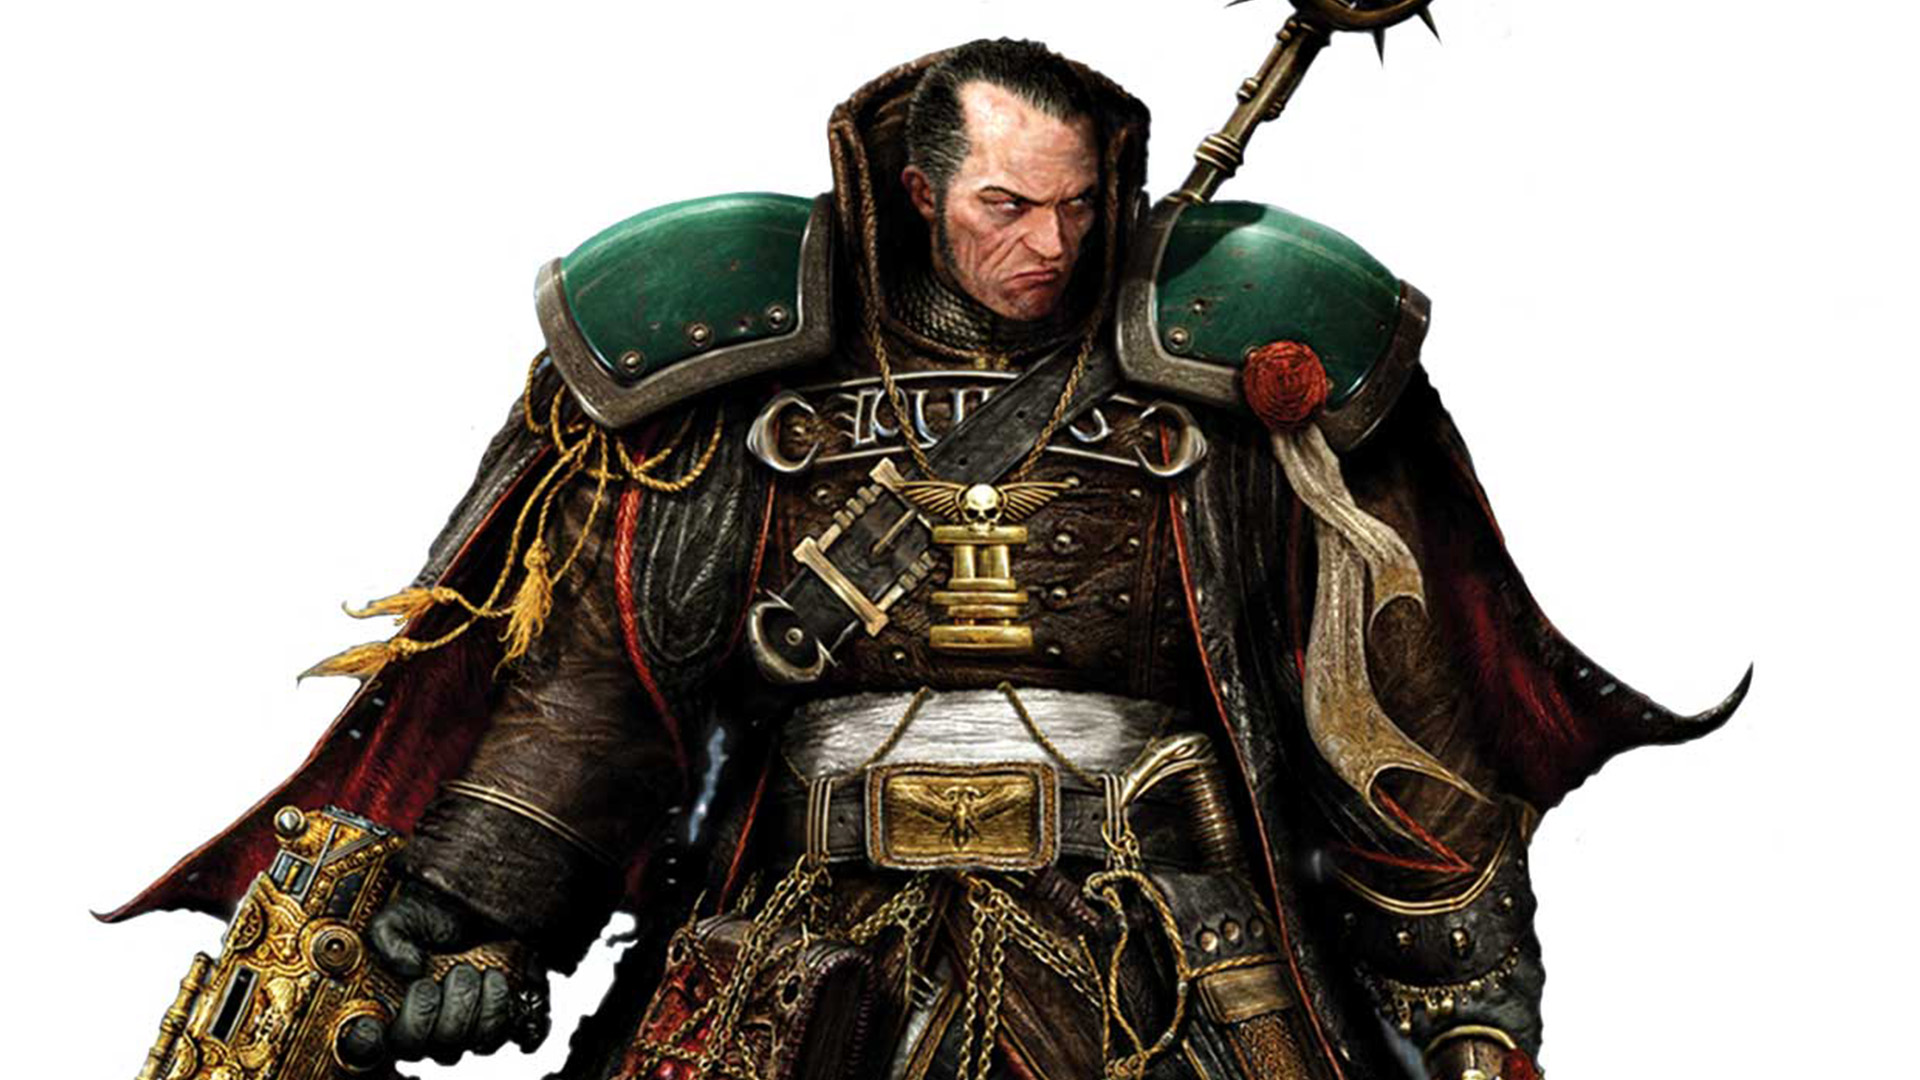 A Warhammer 40k TV series is coming, starring Inquisitor Eisenhorn